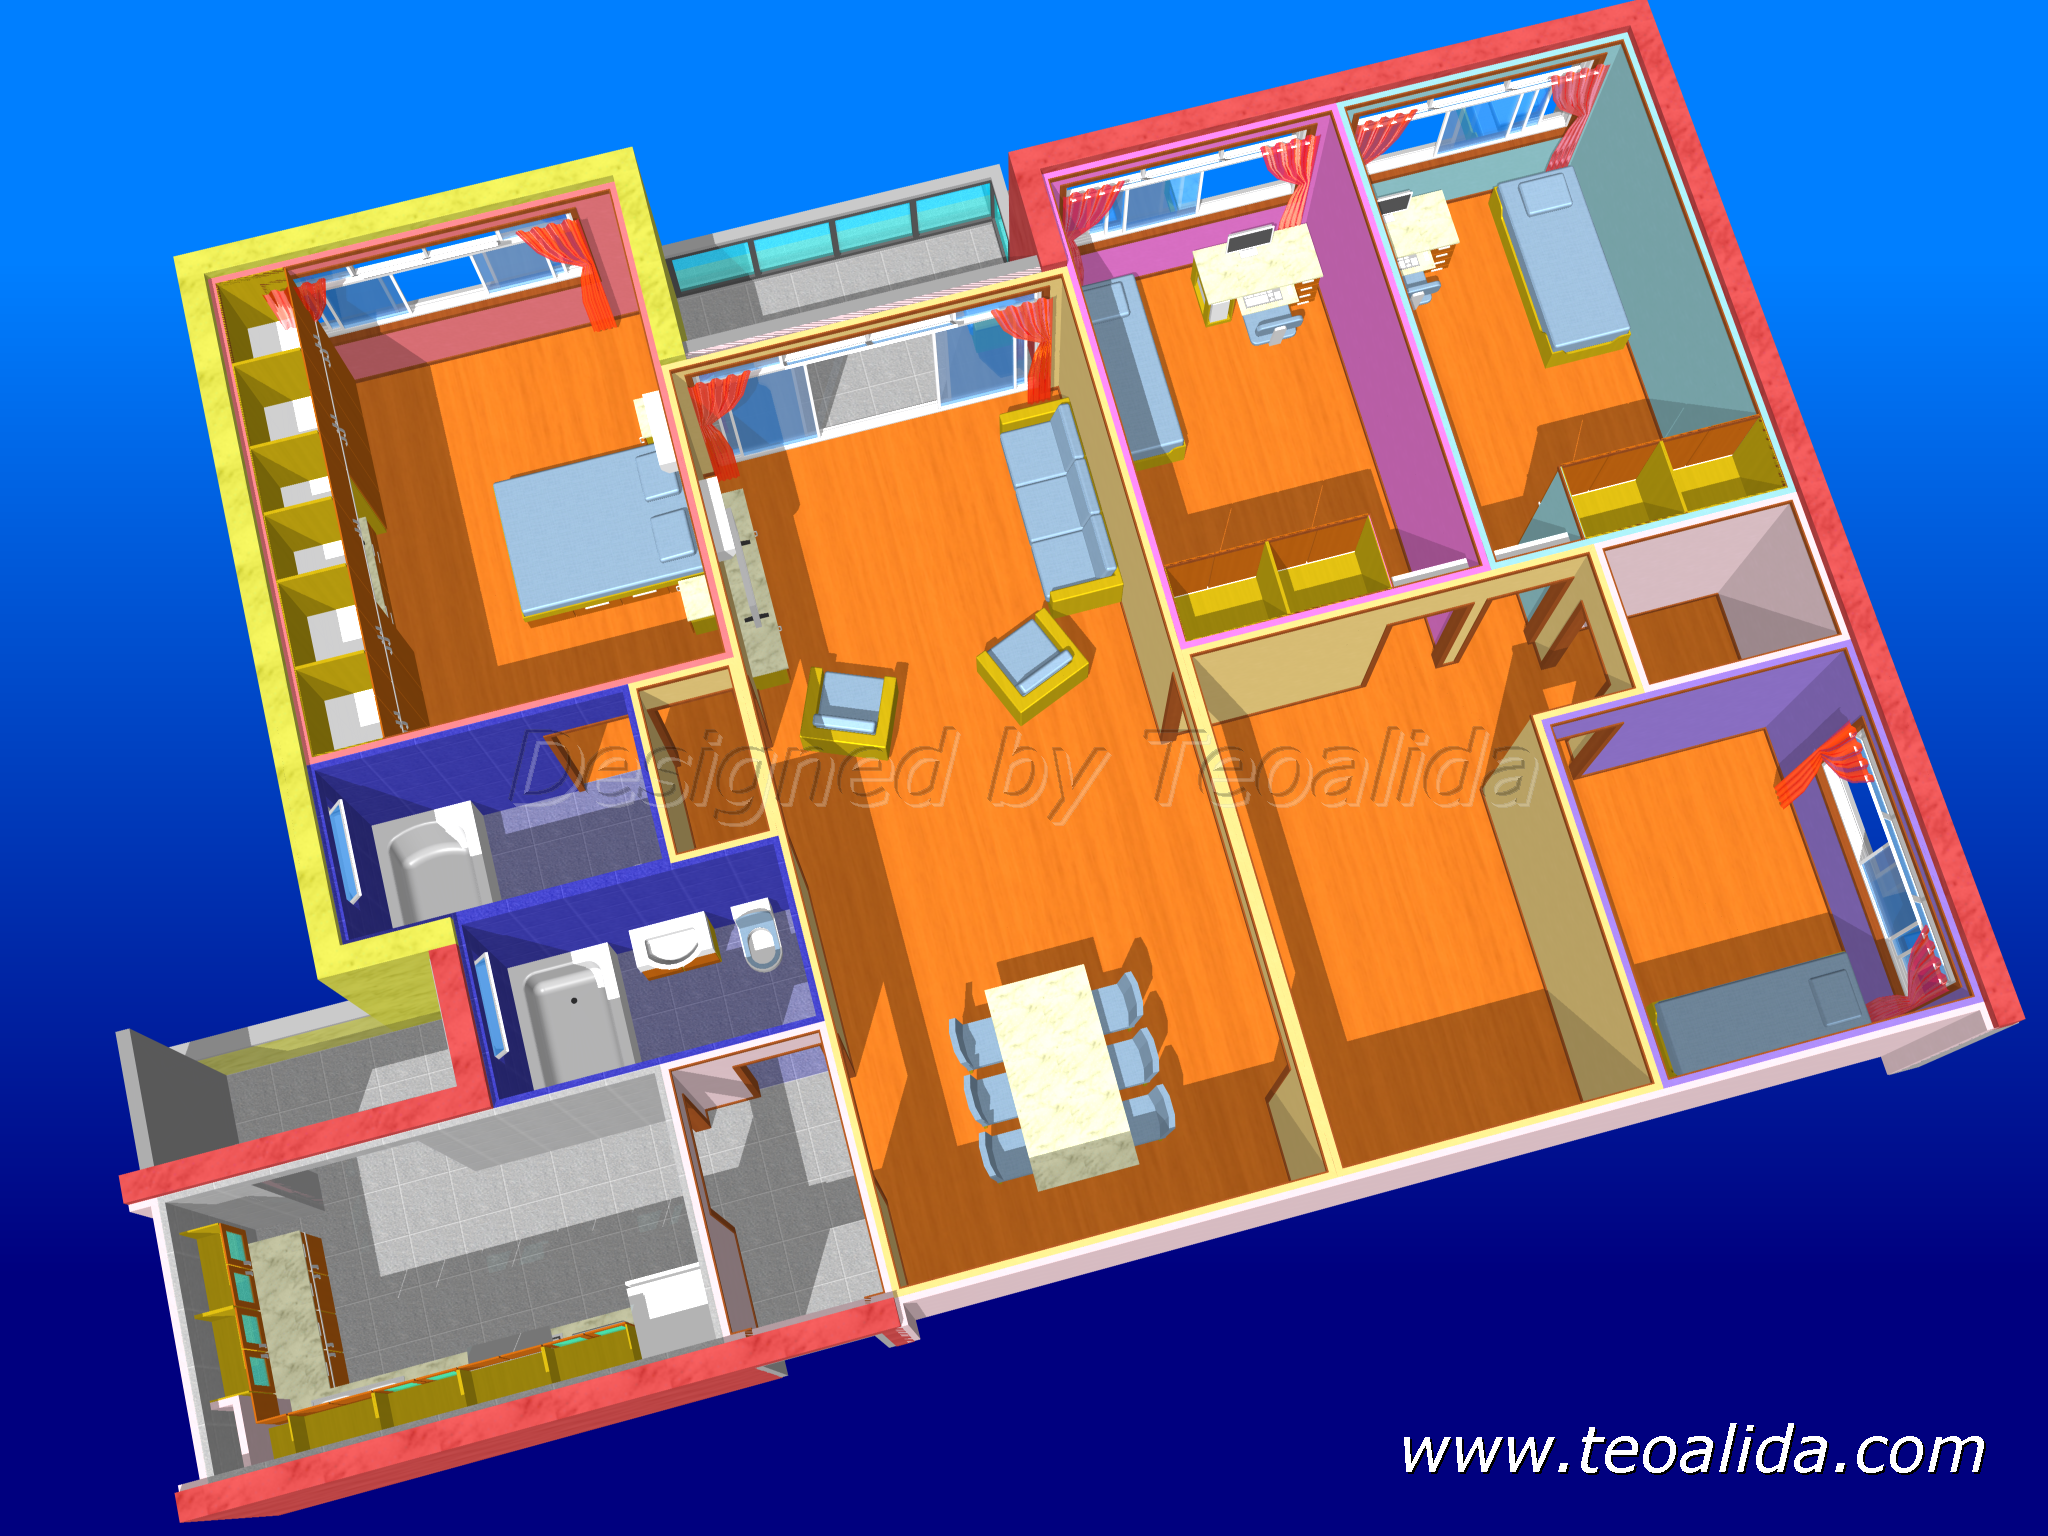 interior design & furniture models | teoalida website